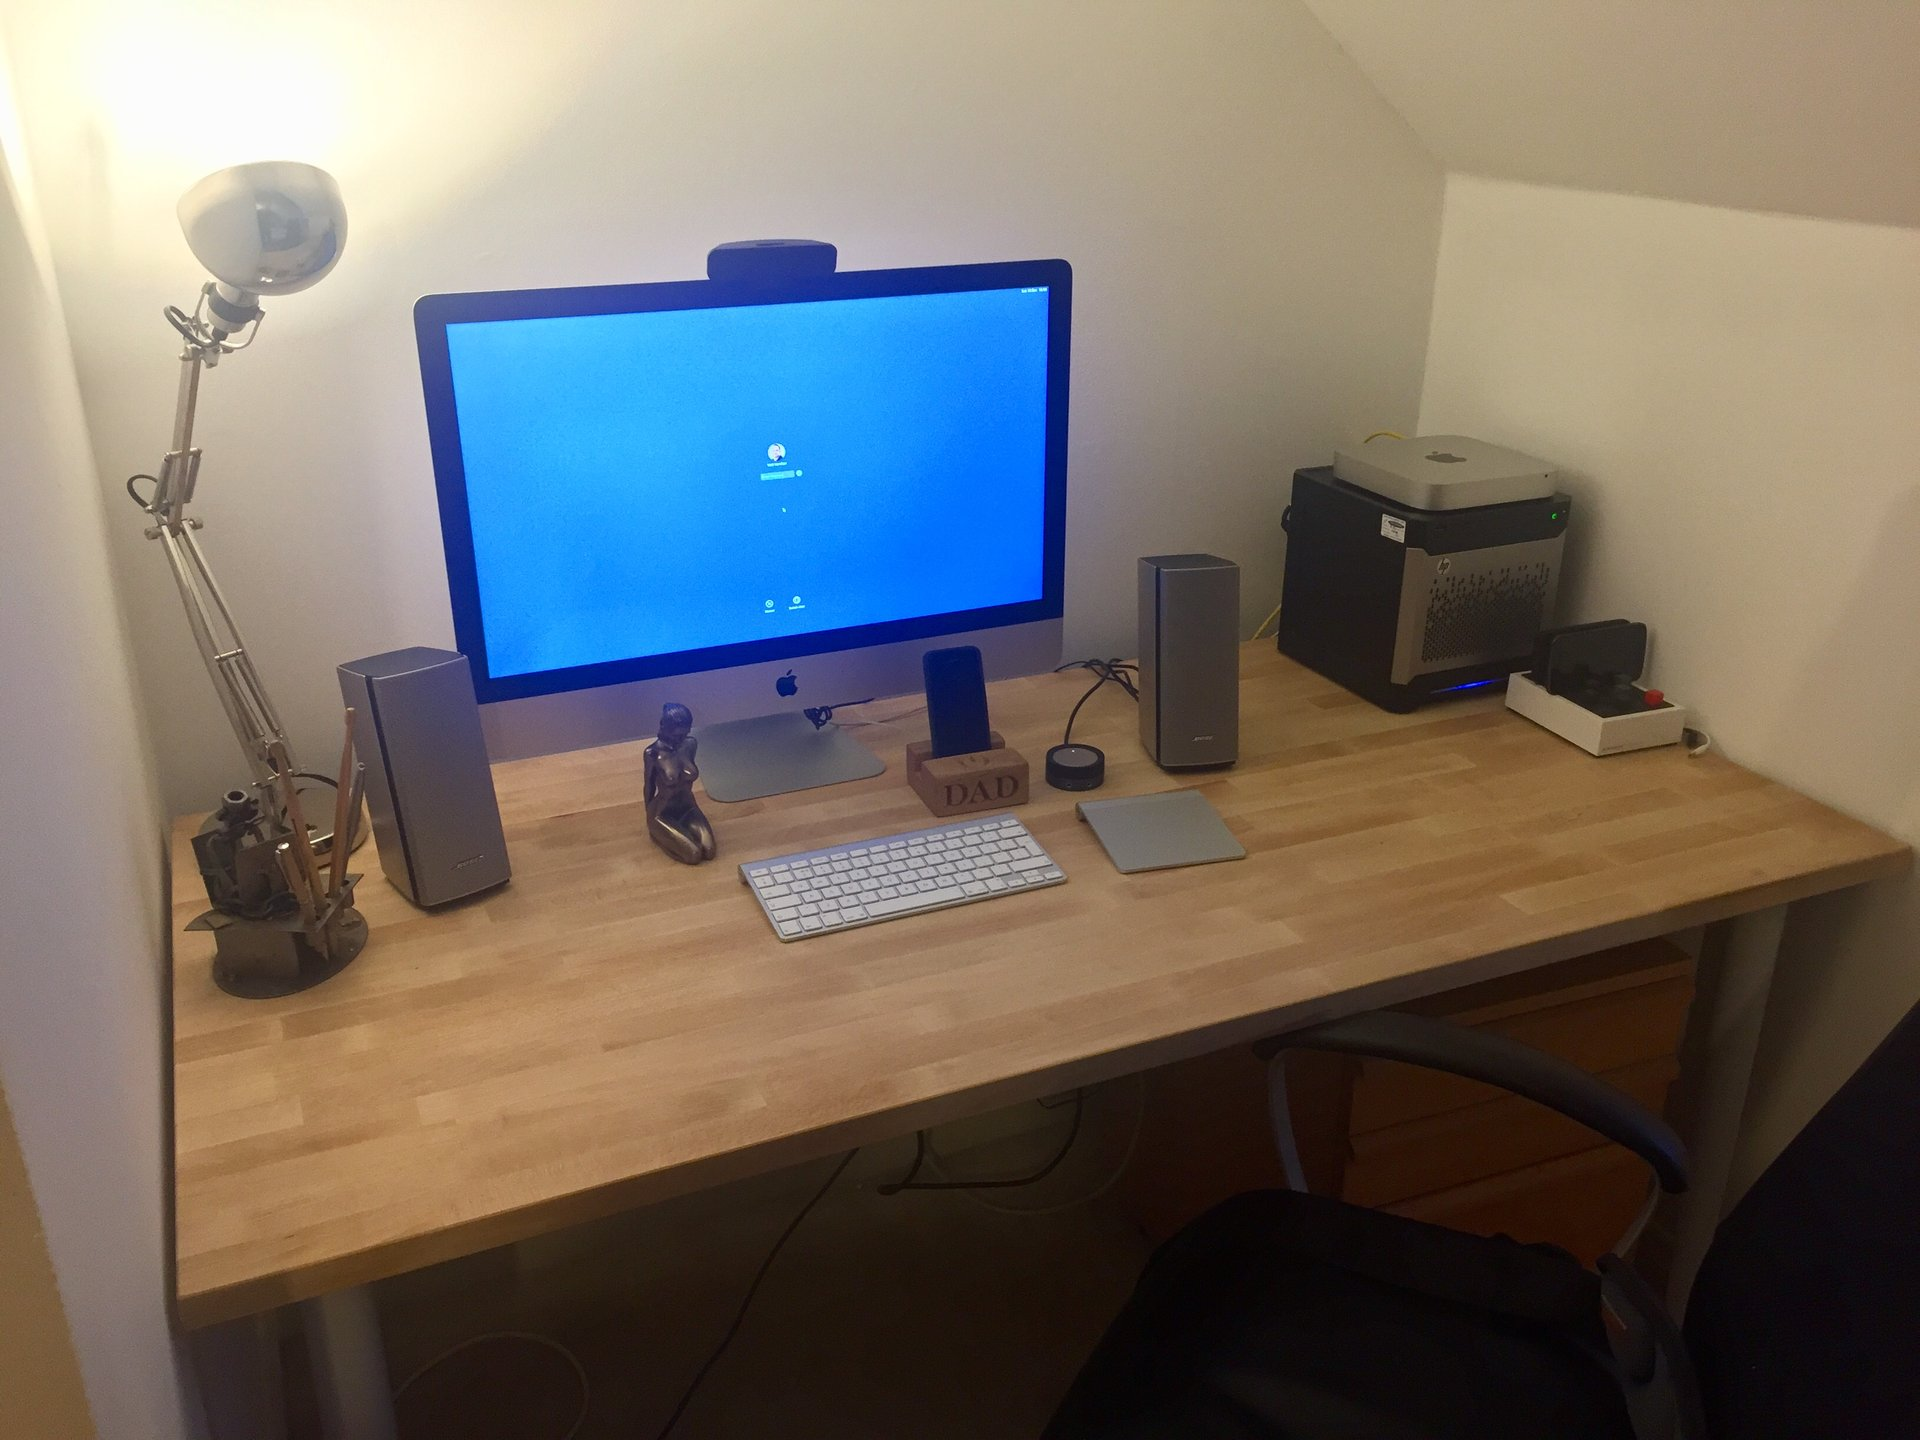 Ikea Standing Desk Hack Covid Edition